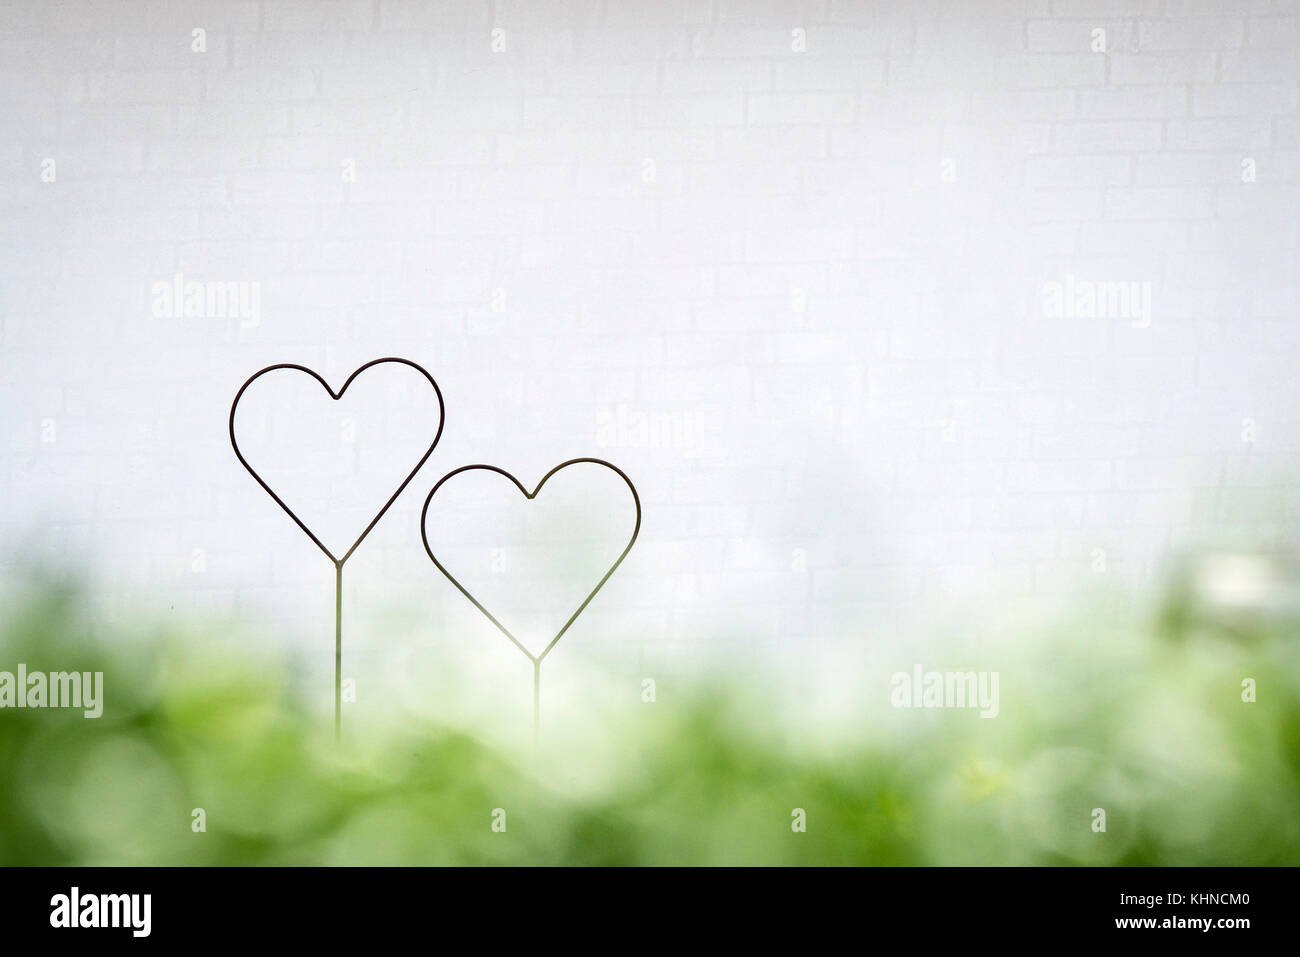 Two hearts together in a bright future with green colors in decoratiive shapes in the spring - Stock Image